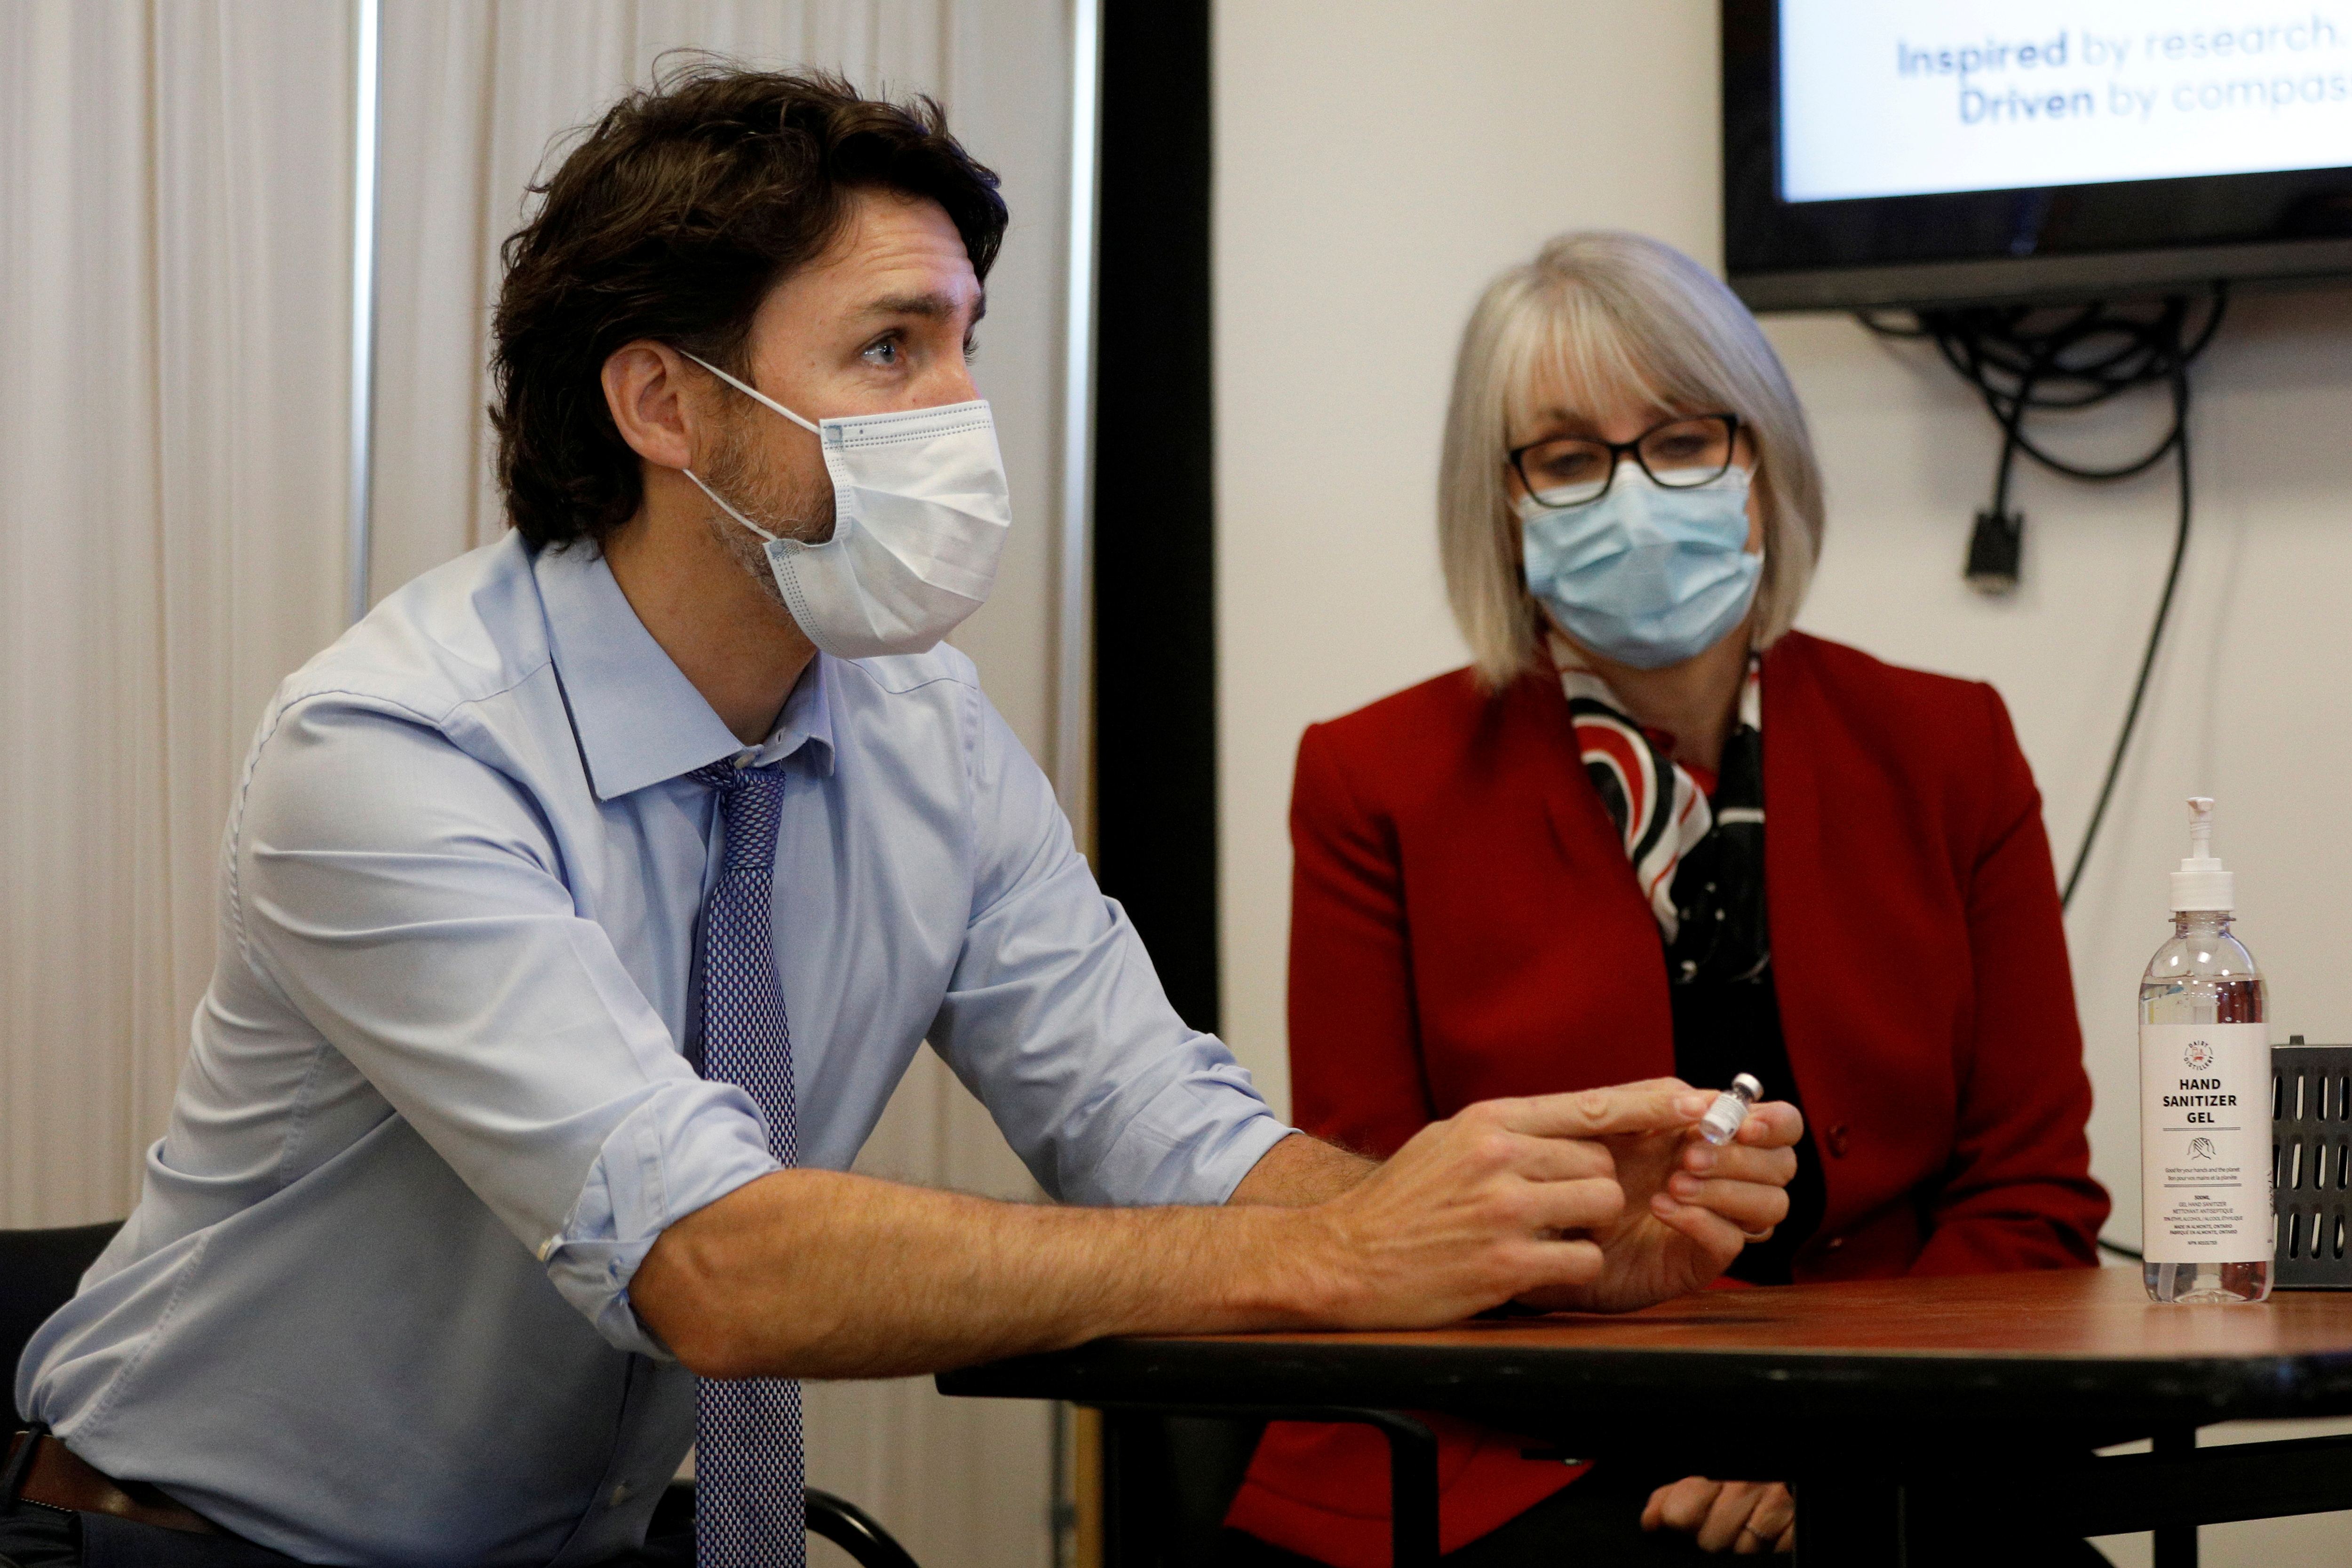 Canada's Prime Minister Justin Trudeau, with Minister of Health Patty Hajdu, holds an empty COVID-19 vaccine vial after the first vaccinations were given at the Civic Hospital in Ottawa, Ontario, Canada December 15, 2020. REUTERS/Blair Gable/File Photo